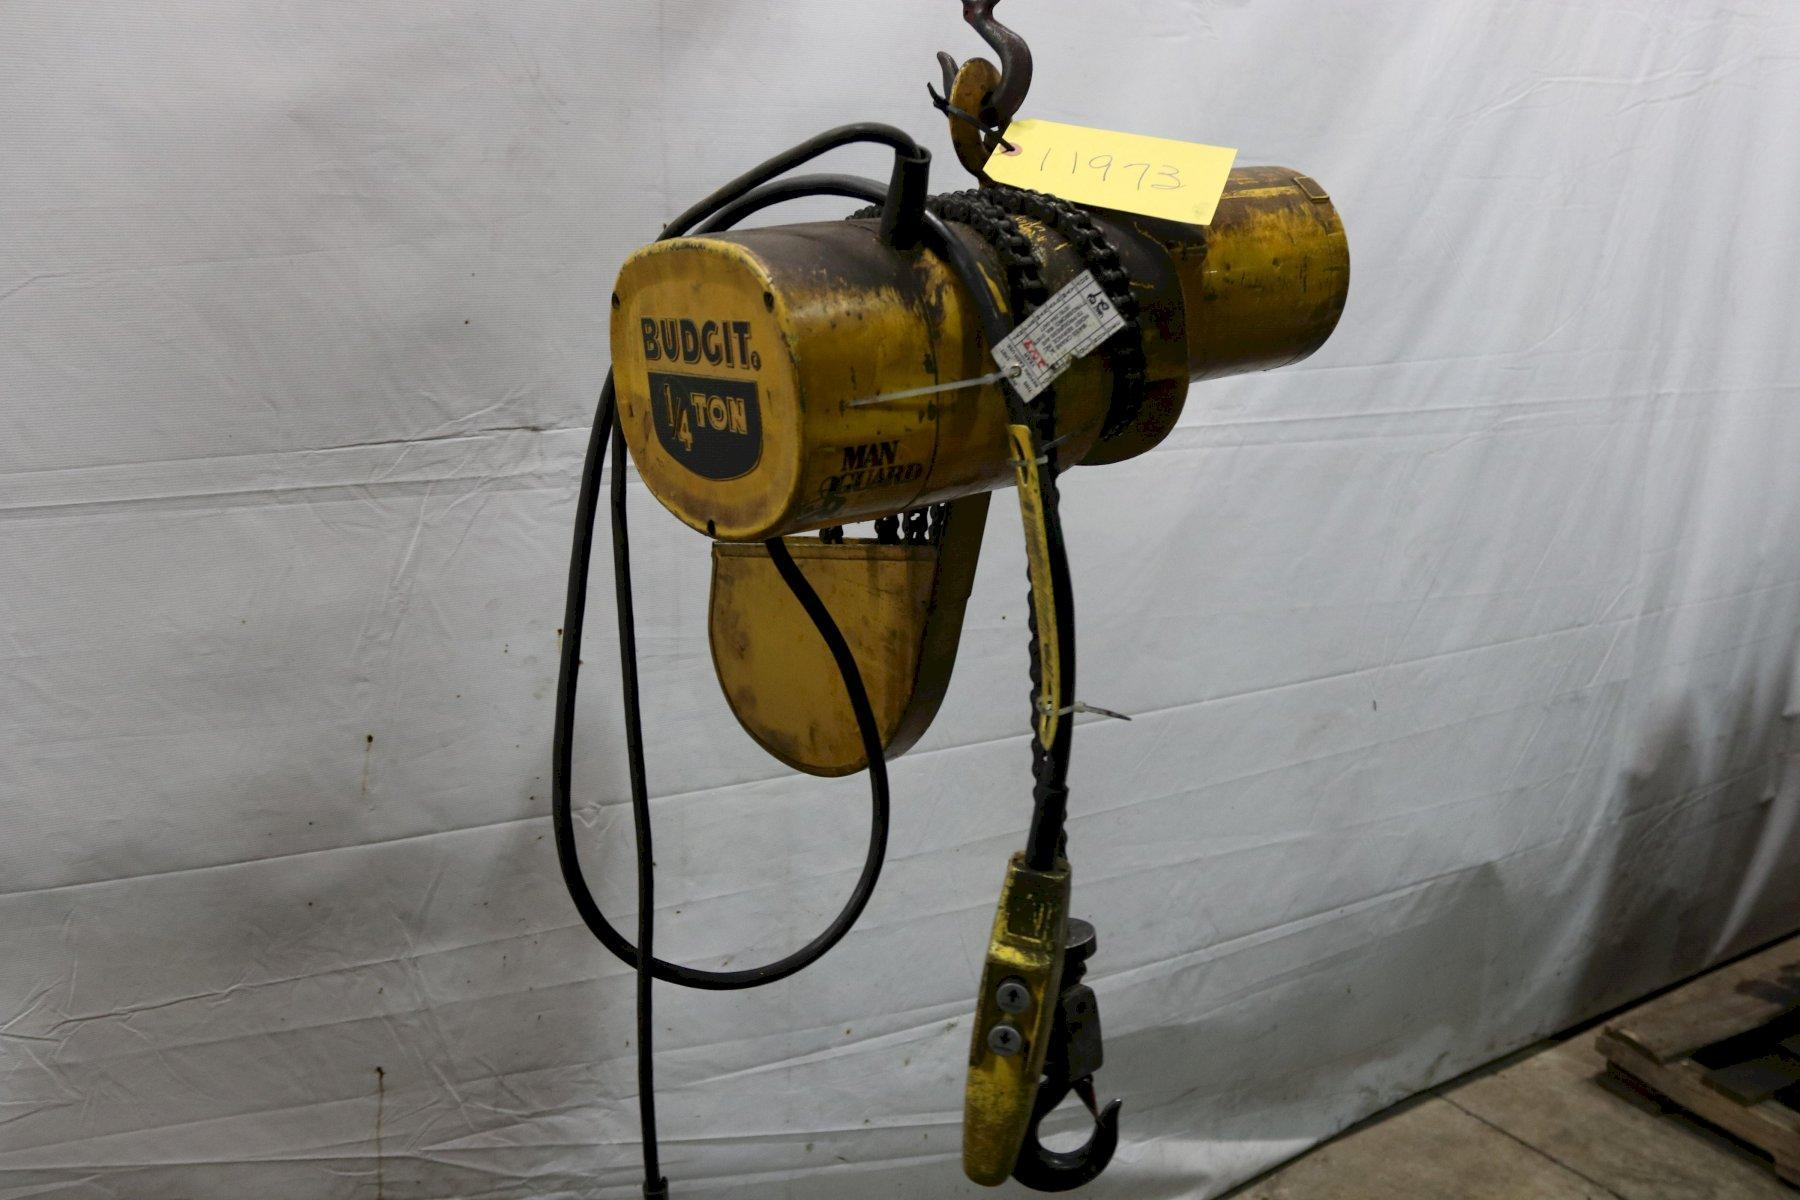 500 LB BUDGIT ELECTRIC POWERED CHAIN HOIST: STOCK #11973